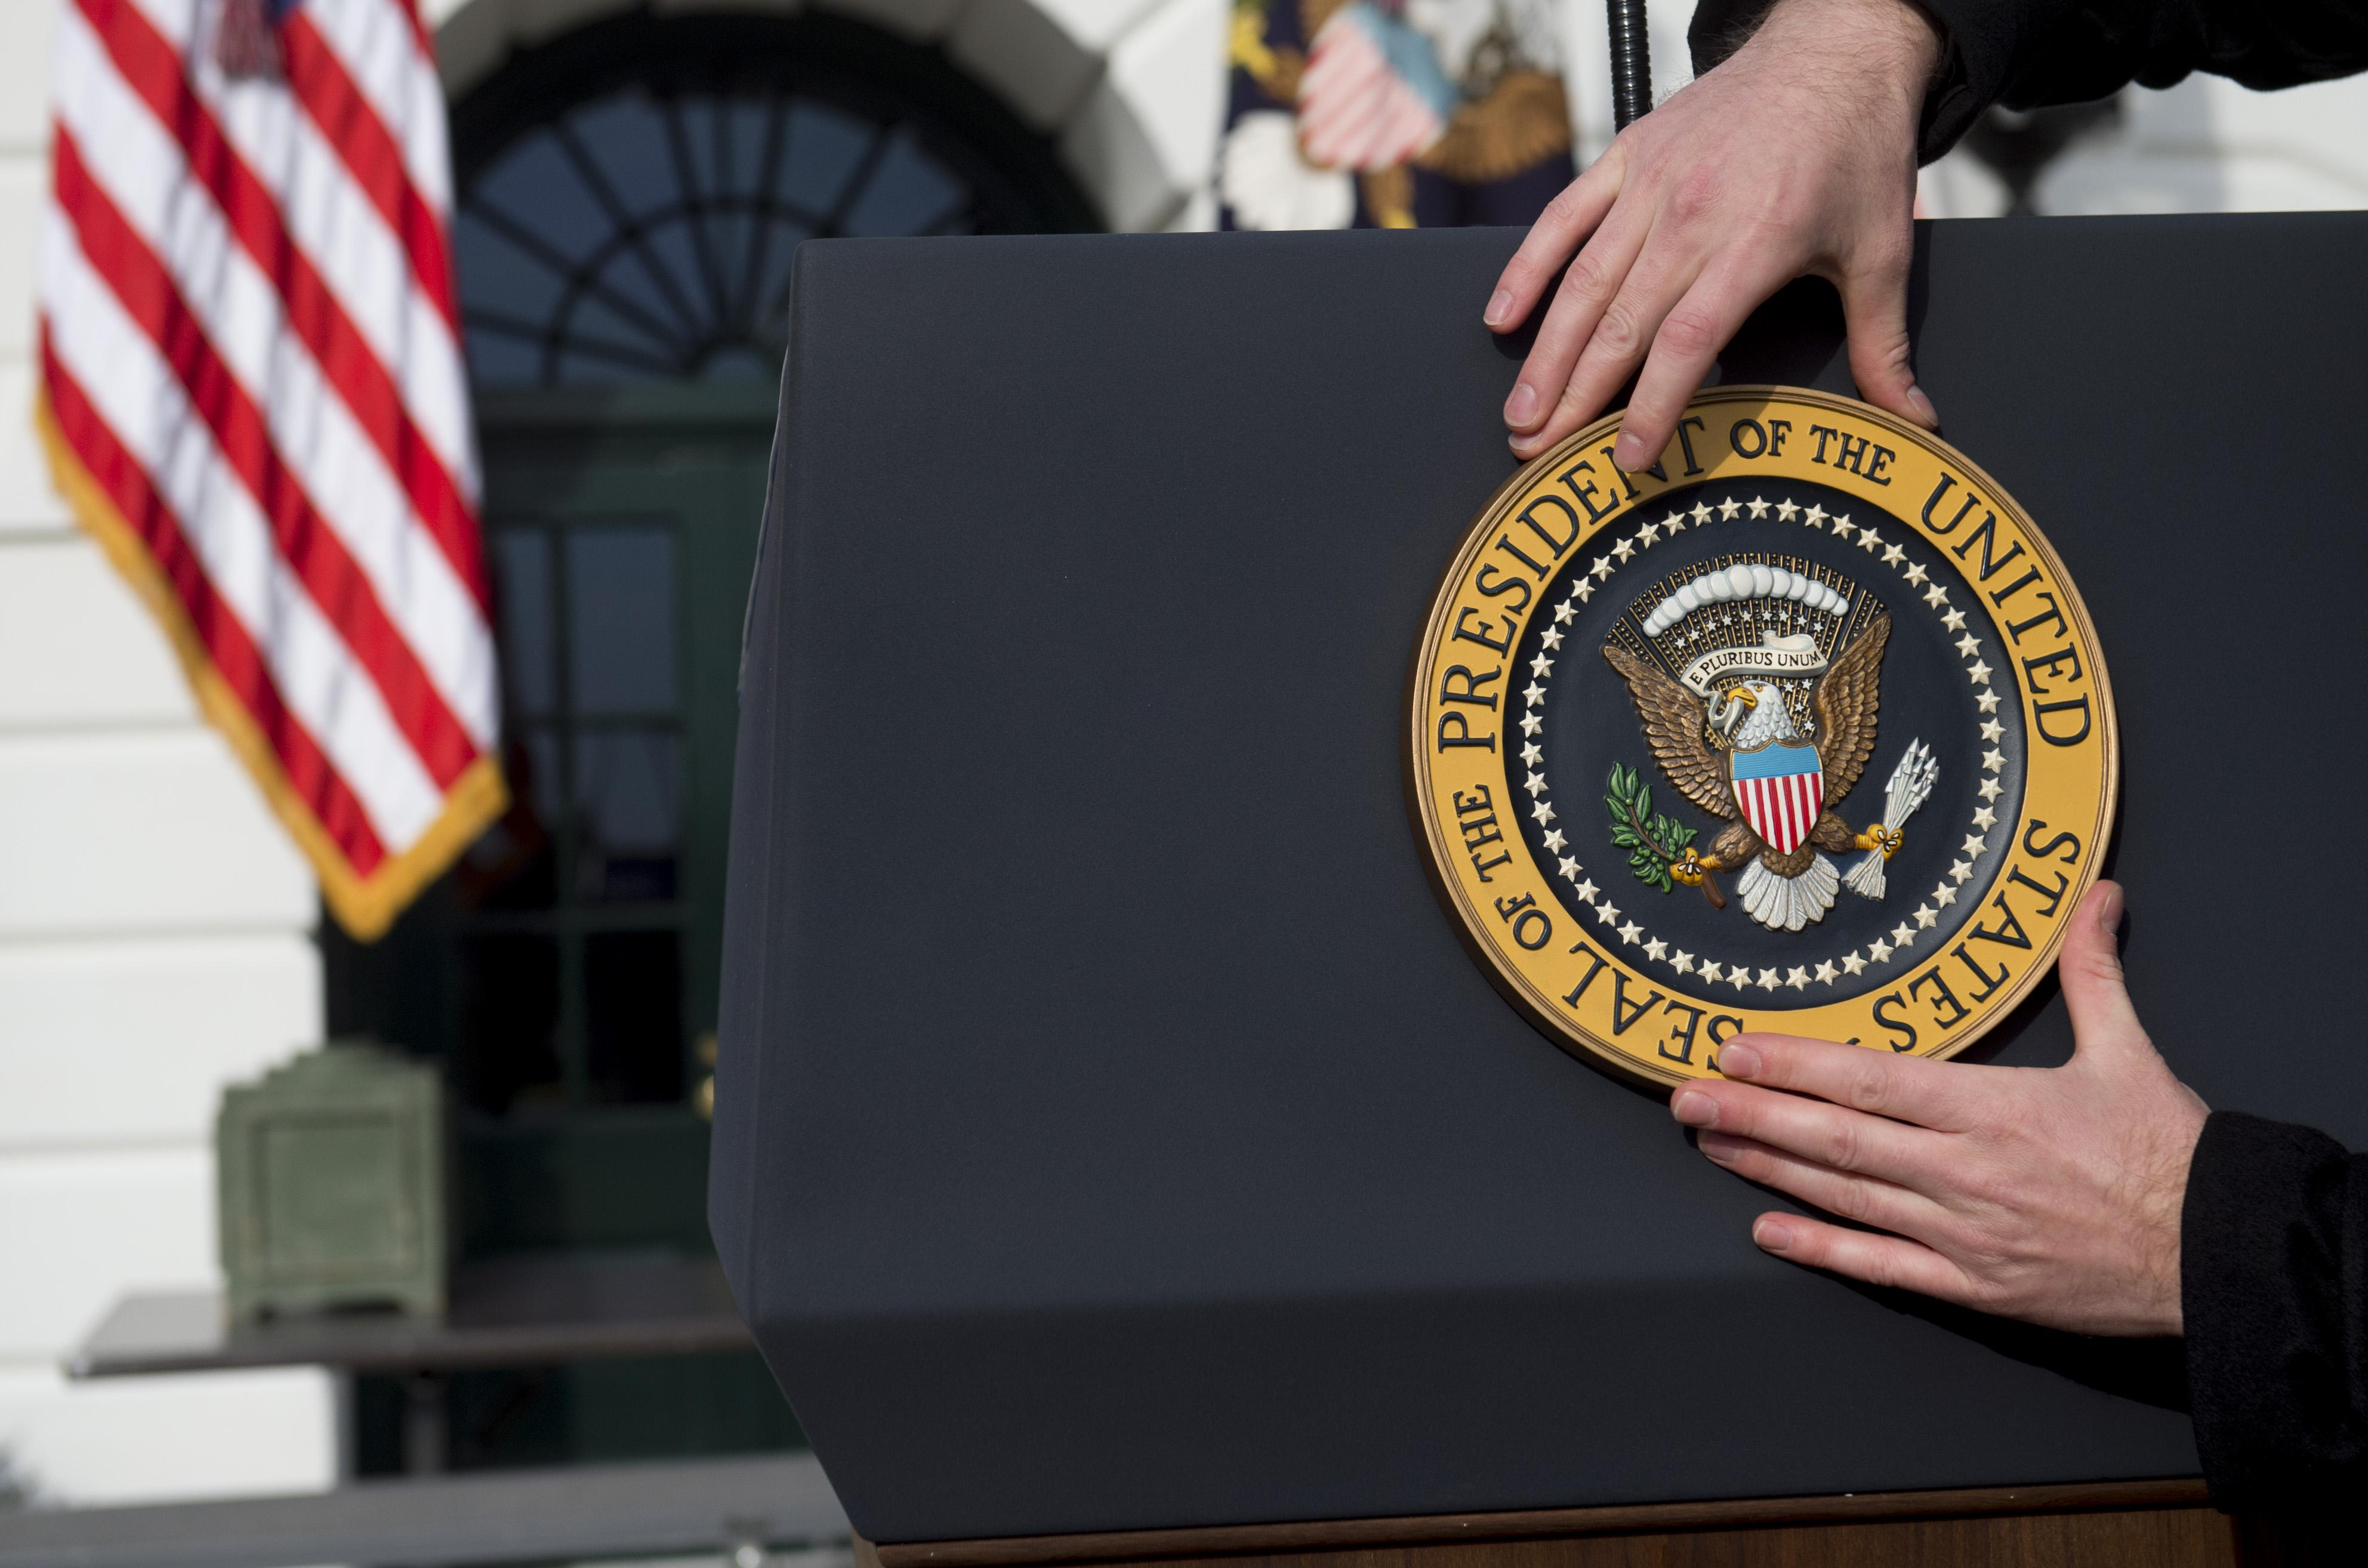 A staff member places the Presidential Seal on a podium on the South Lawn of the White House.